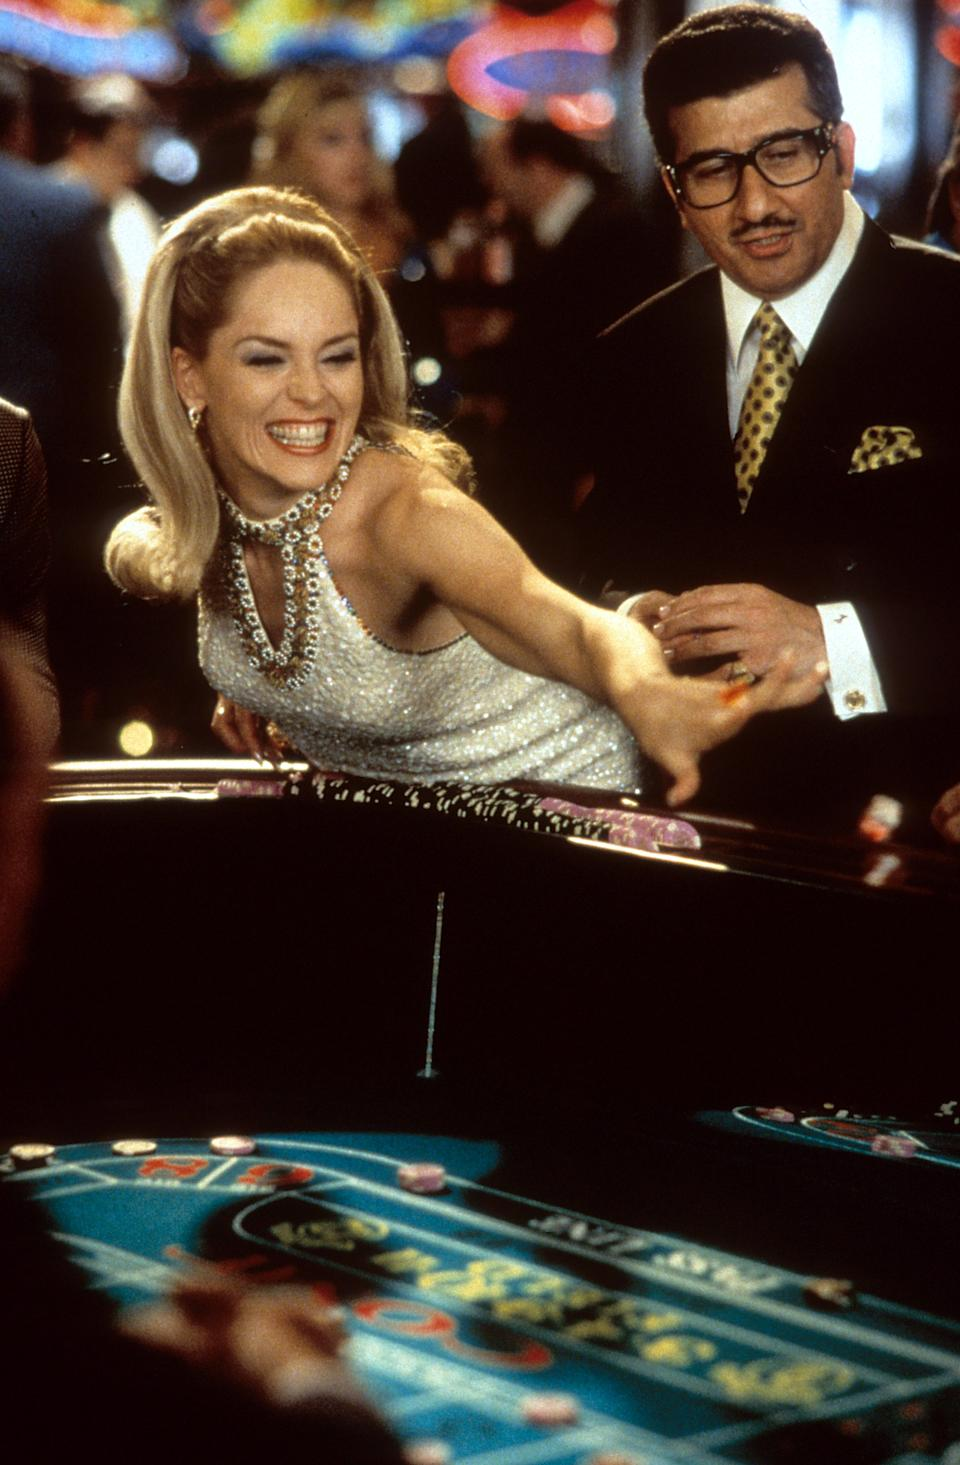 Sharon Stone having fun gambling in a scene from the film 'Casino', 1995. (Photo by Universal Pictures/Getty Images)